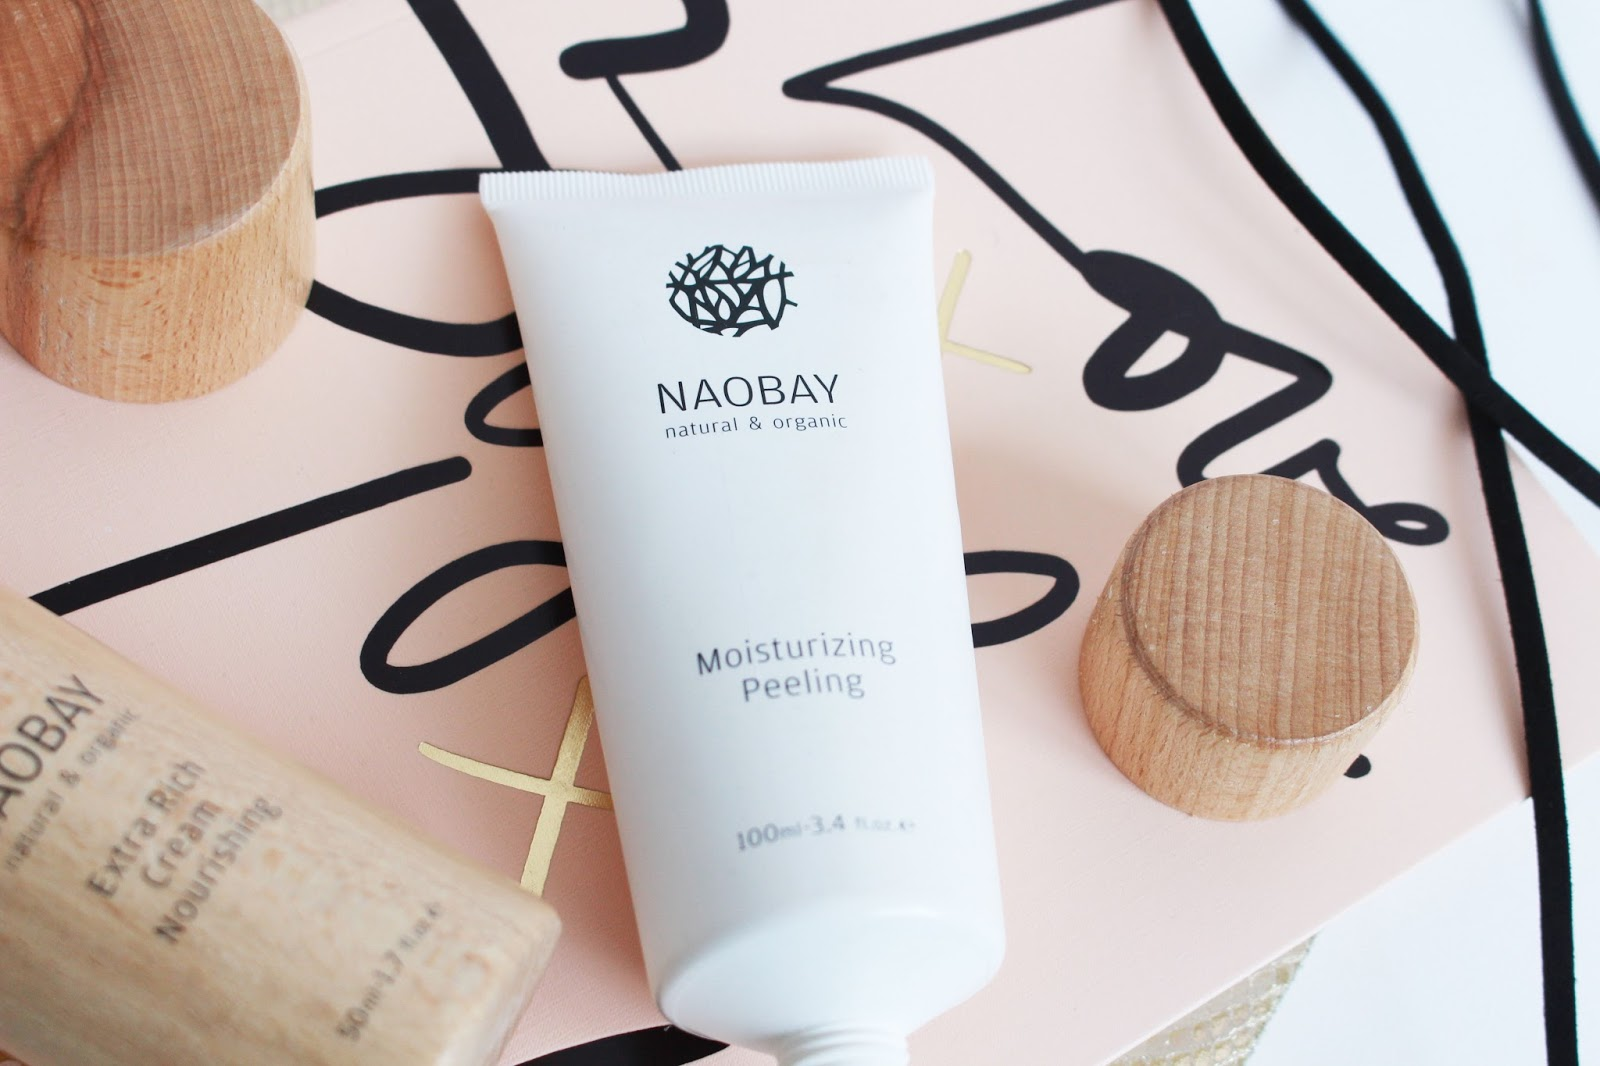 NAOBAY Nourishing Cream & Moisturizing Peeling Skincare, Naobay nourishing cream, skincare review uk, naobay uk, naobay review, naobay exfoliator, naobay peeling review